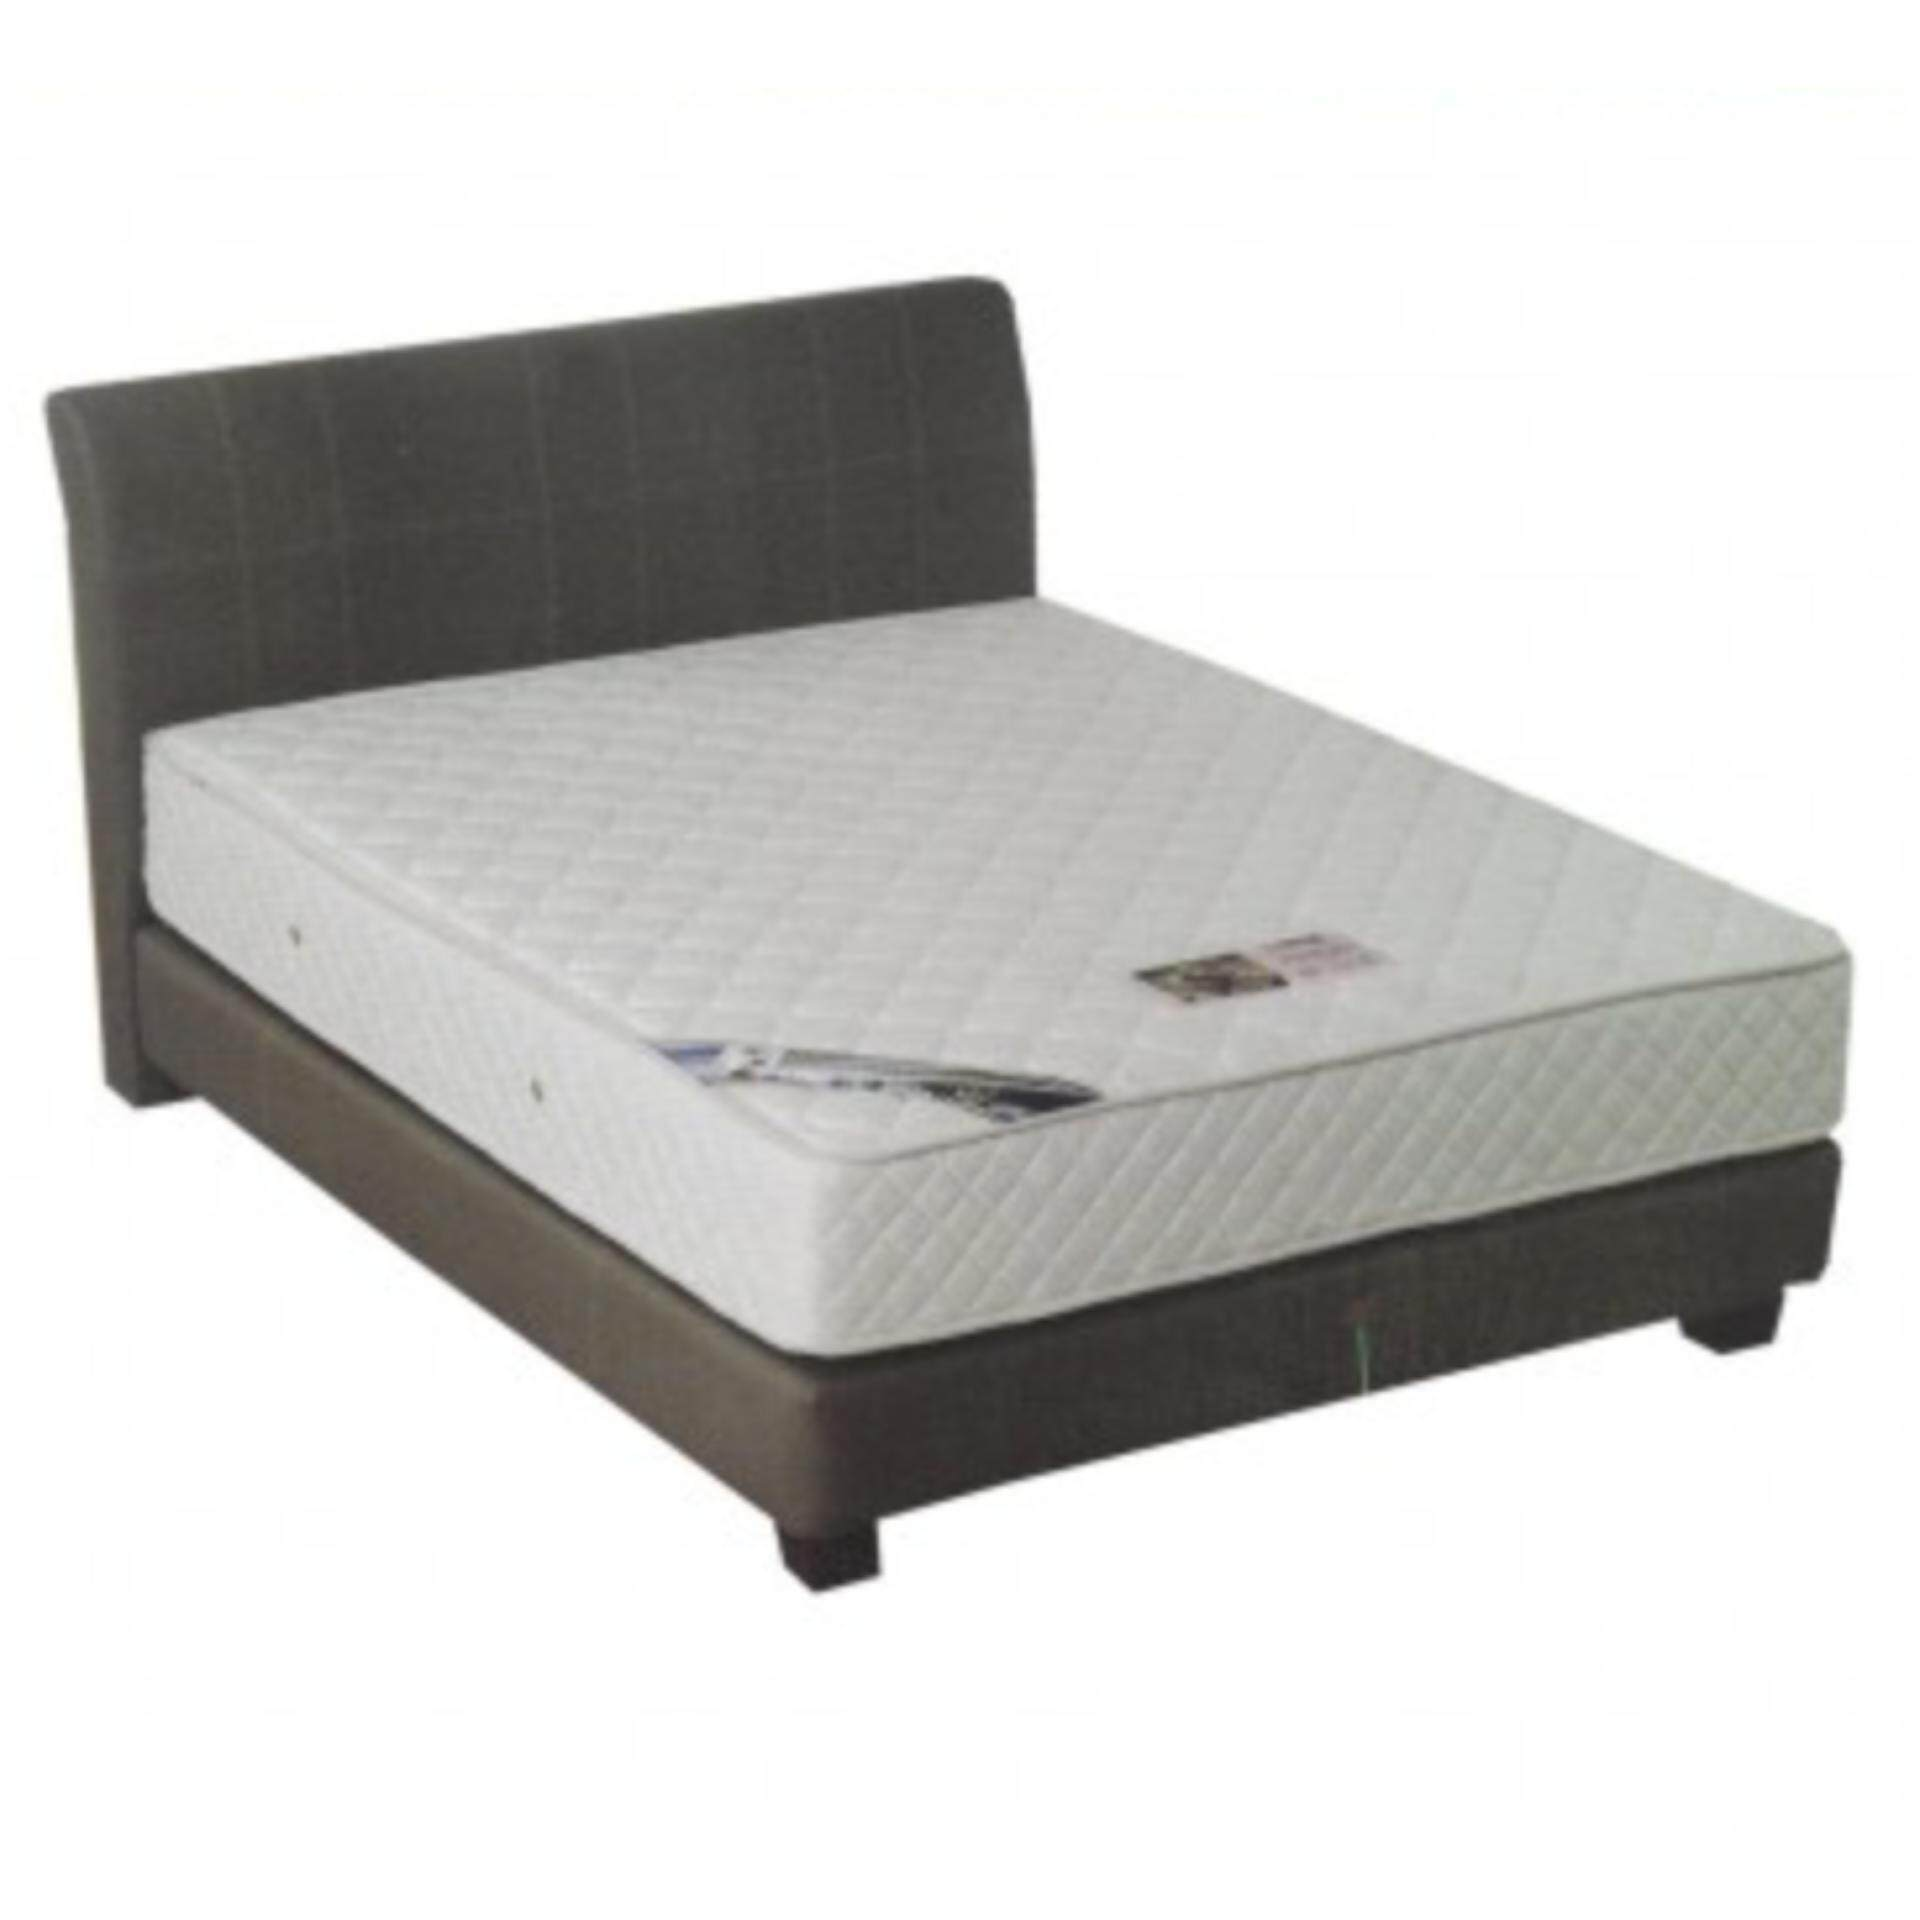 King Koil Rubberised Coir Fibre Fiberatex 8 Inches Queen Mattress (10 Years Warranty)